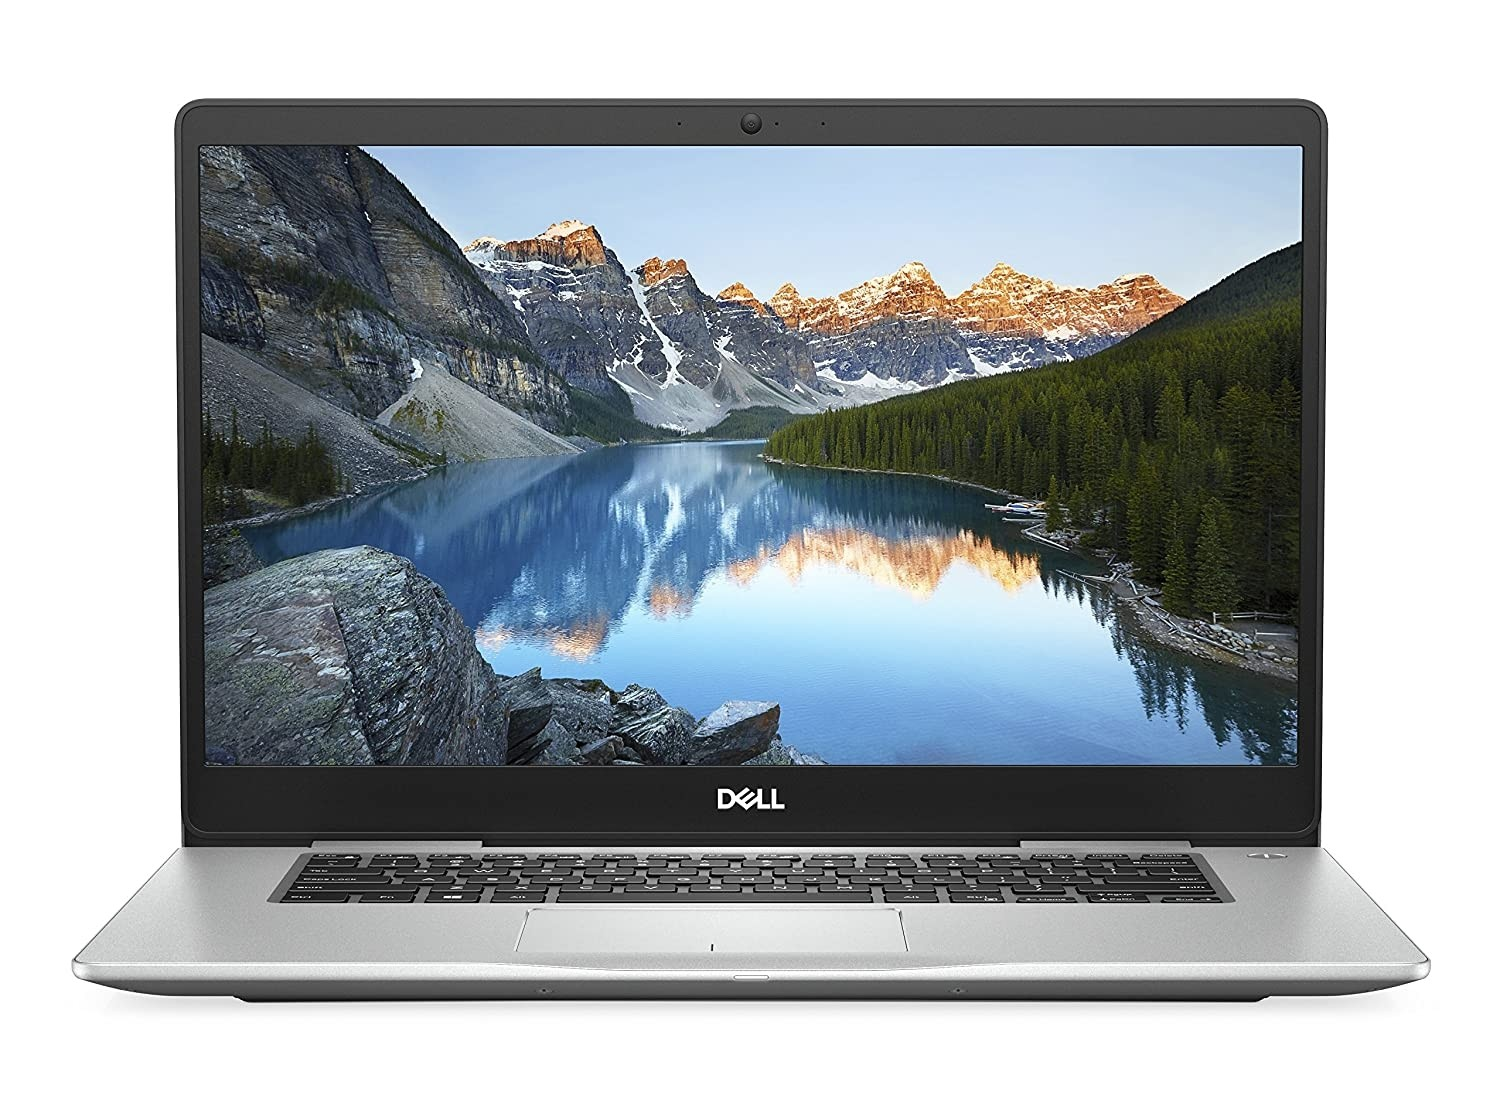 Refurbished laptops & desktops - Dell Inspiron 7570 HDR/I7-8550/16GB/512 GB SSD/4 GB/Win 10/15.6 Inch Touch